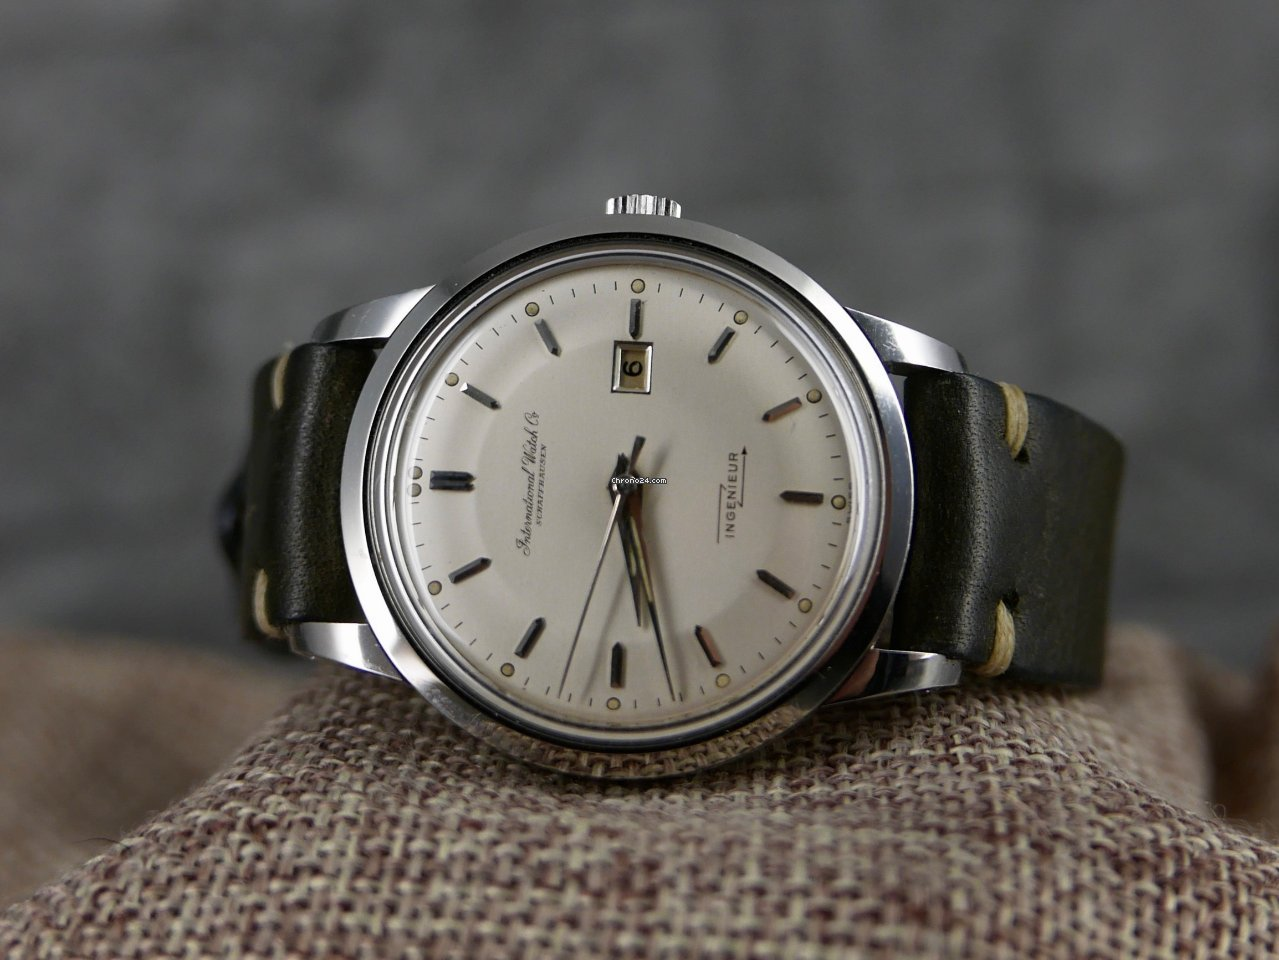 IWC Ingenieur 666 AD 1960 pre-owned